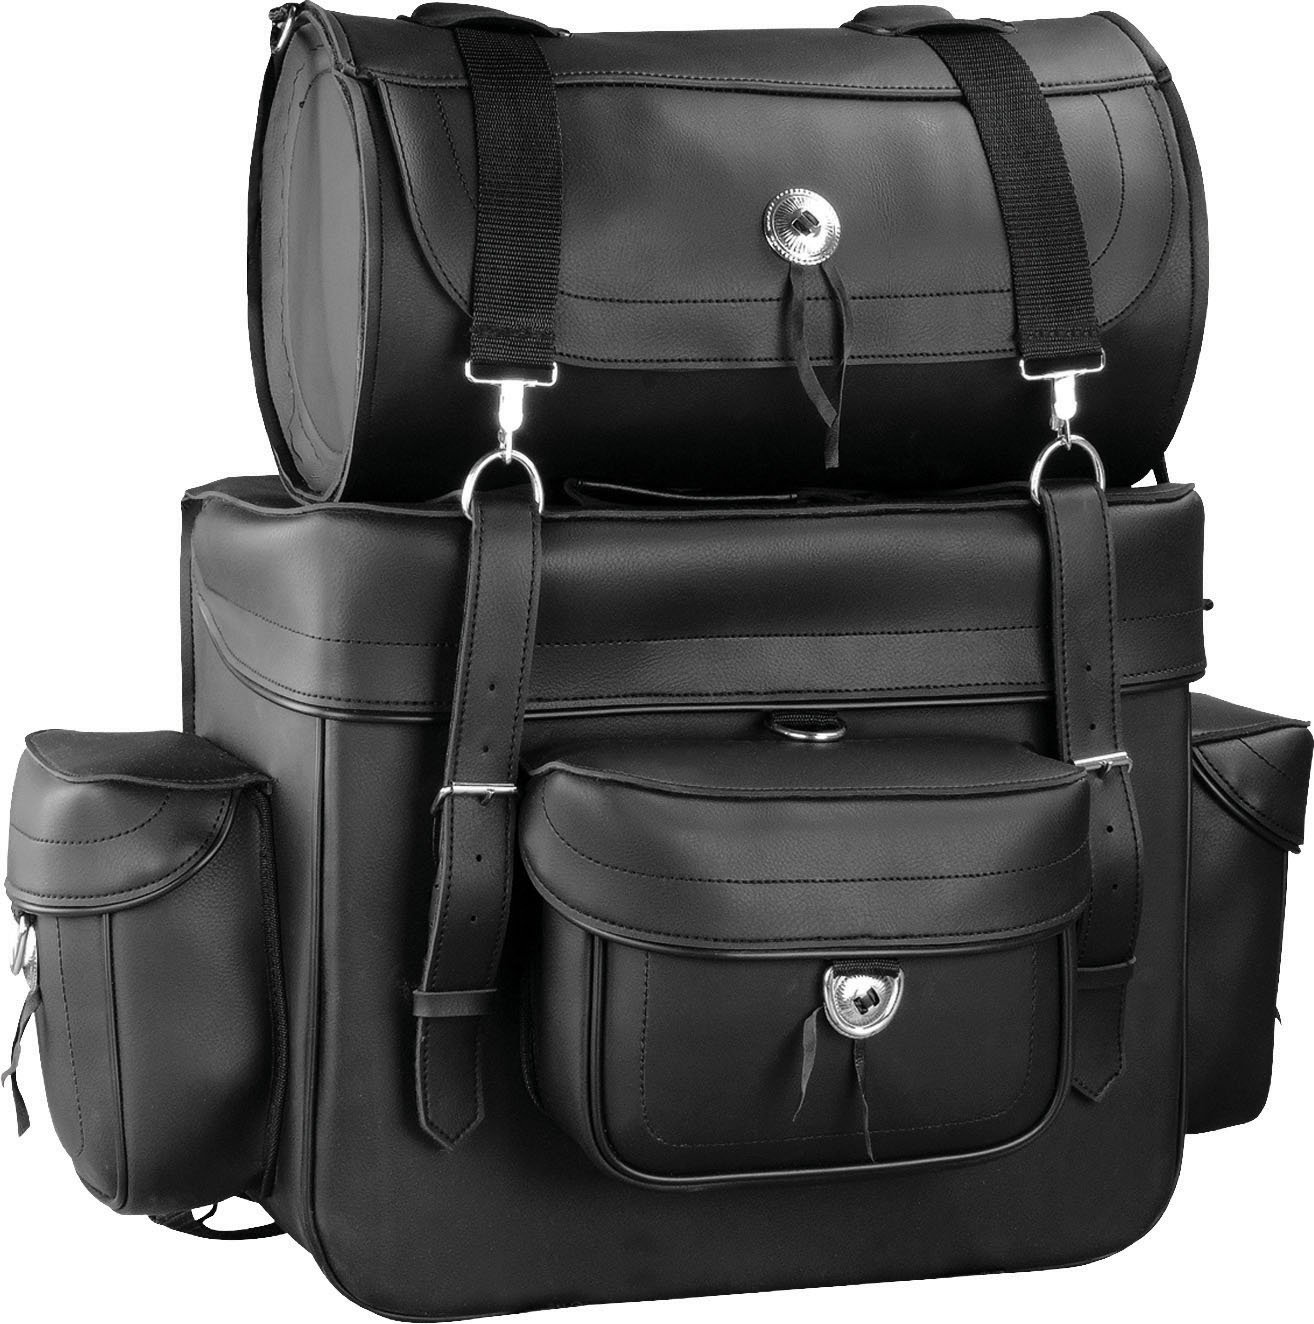 Raider Motorcycle Leather Touring Storage Luggage Bag with Removeable Roll Bag